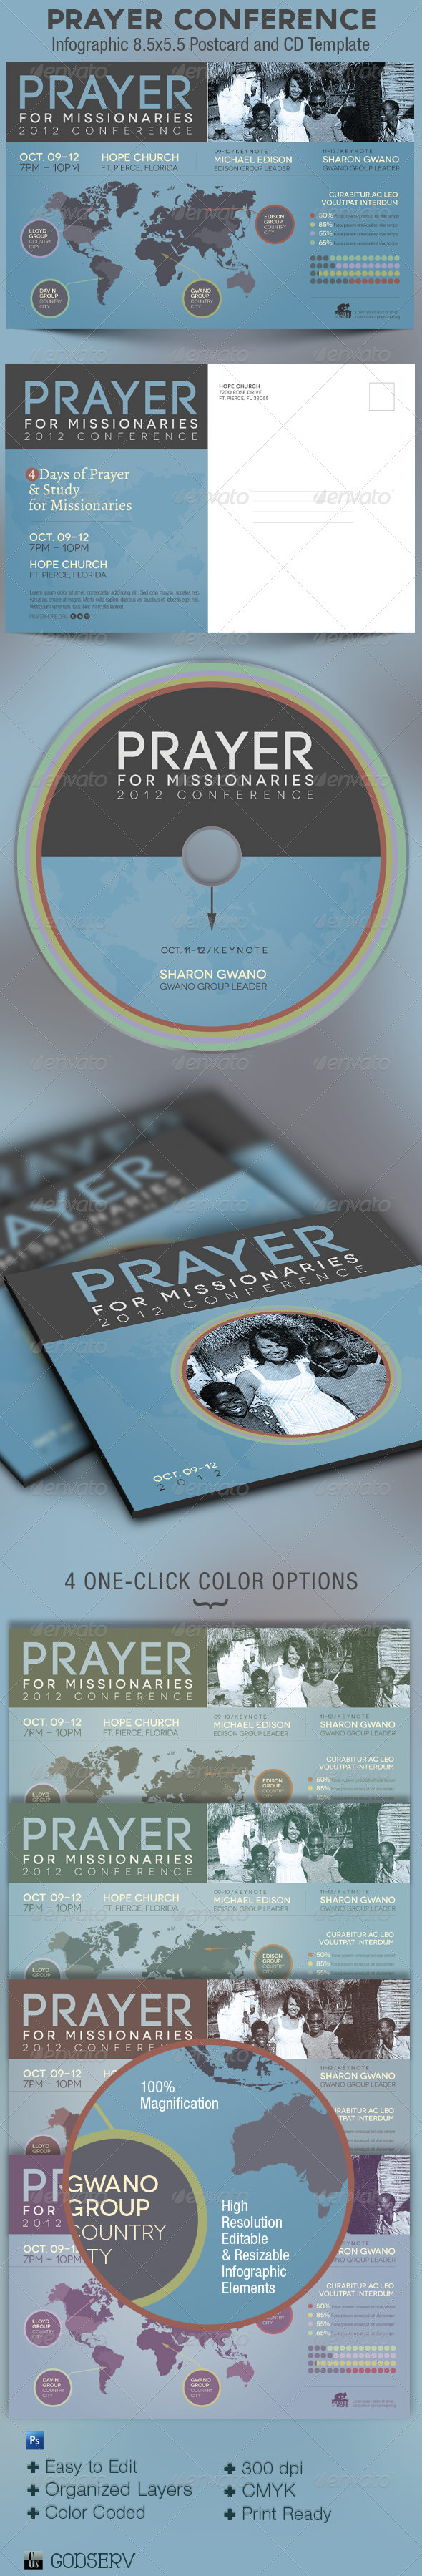 Prayer Conference Church Flyer and CD Template - Church Flyers